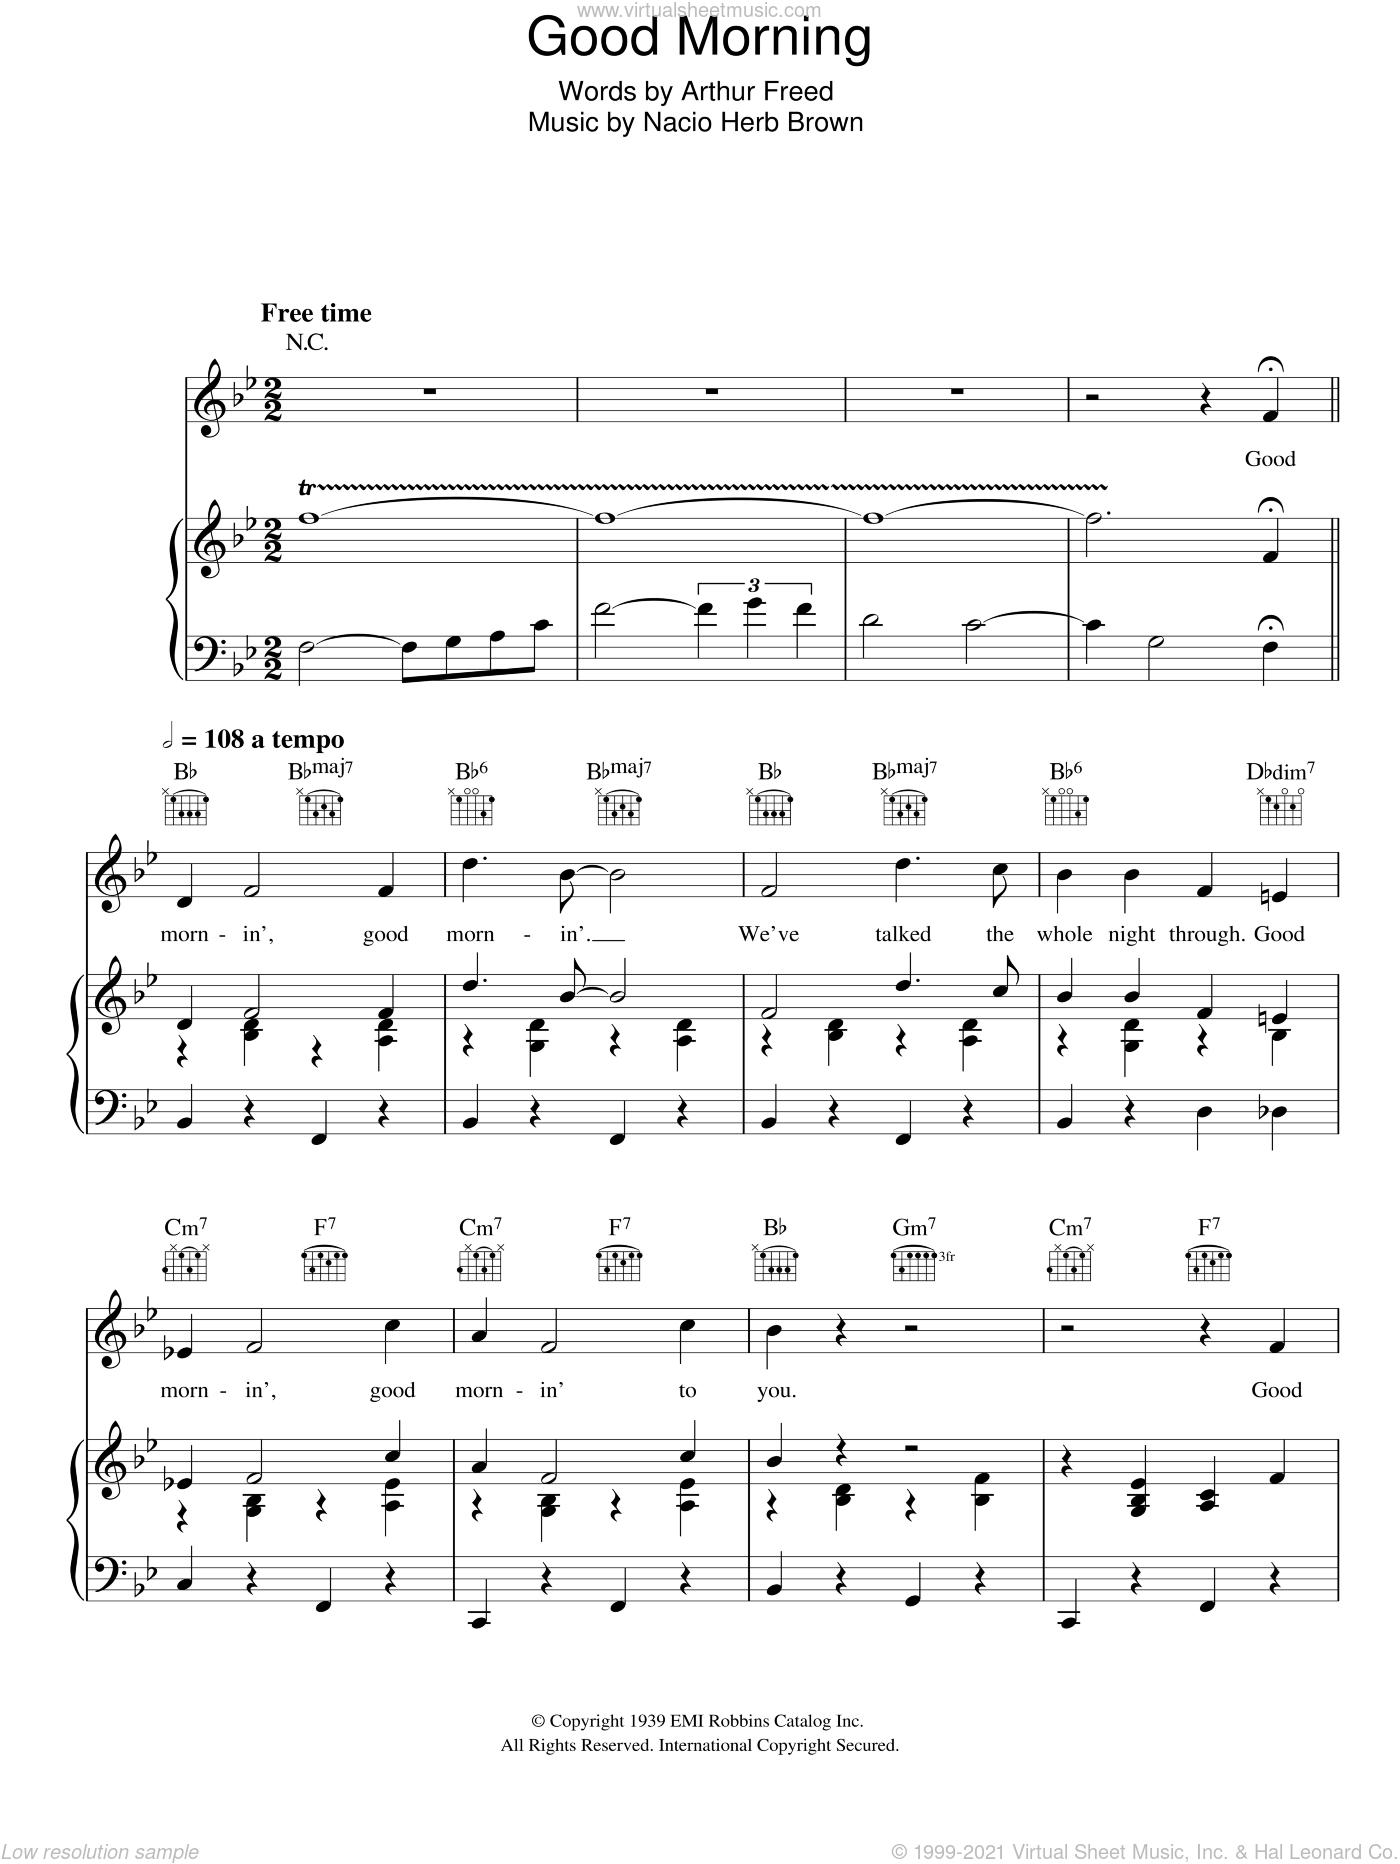 Good Morning (from Singin' In The Rain) sheet music for voice, piano or guitar by Arthur Freed